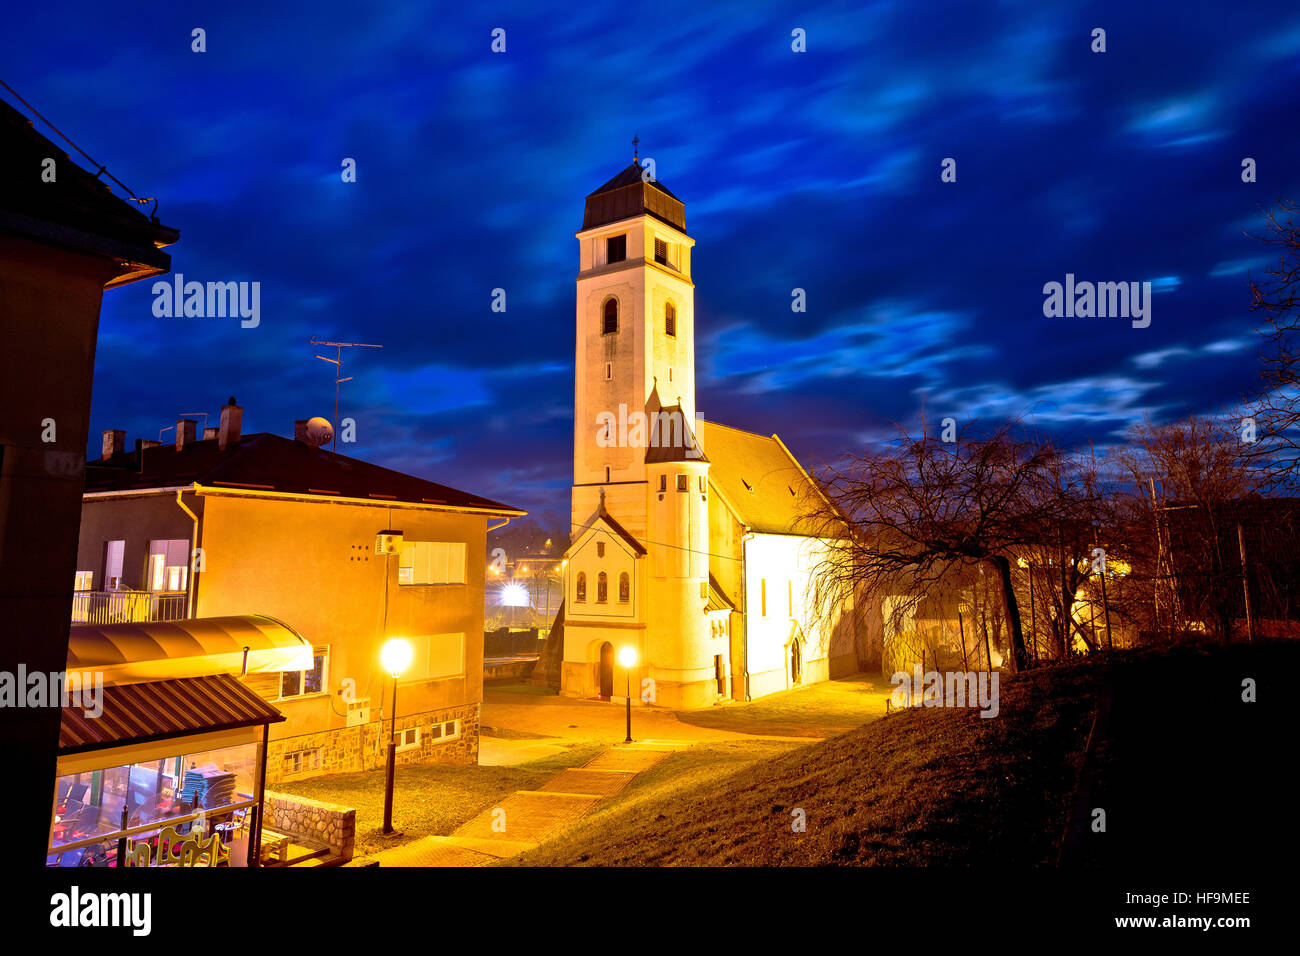 Krizevci historic cathedral evening view, Prigorje region of Croatia - Stock Image